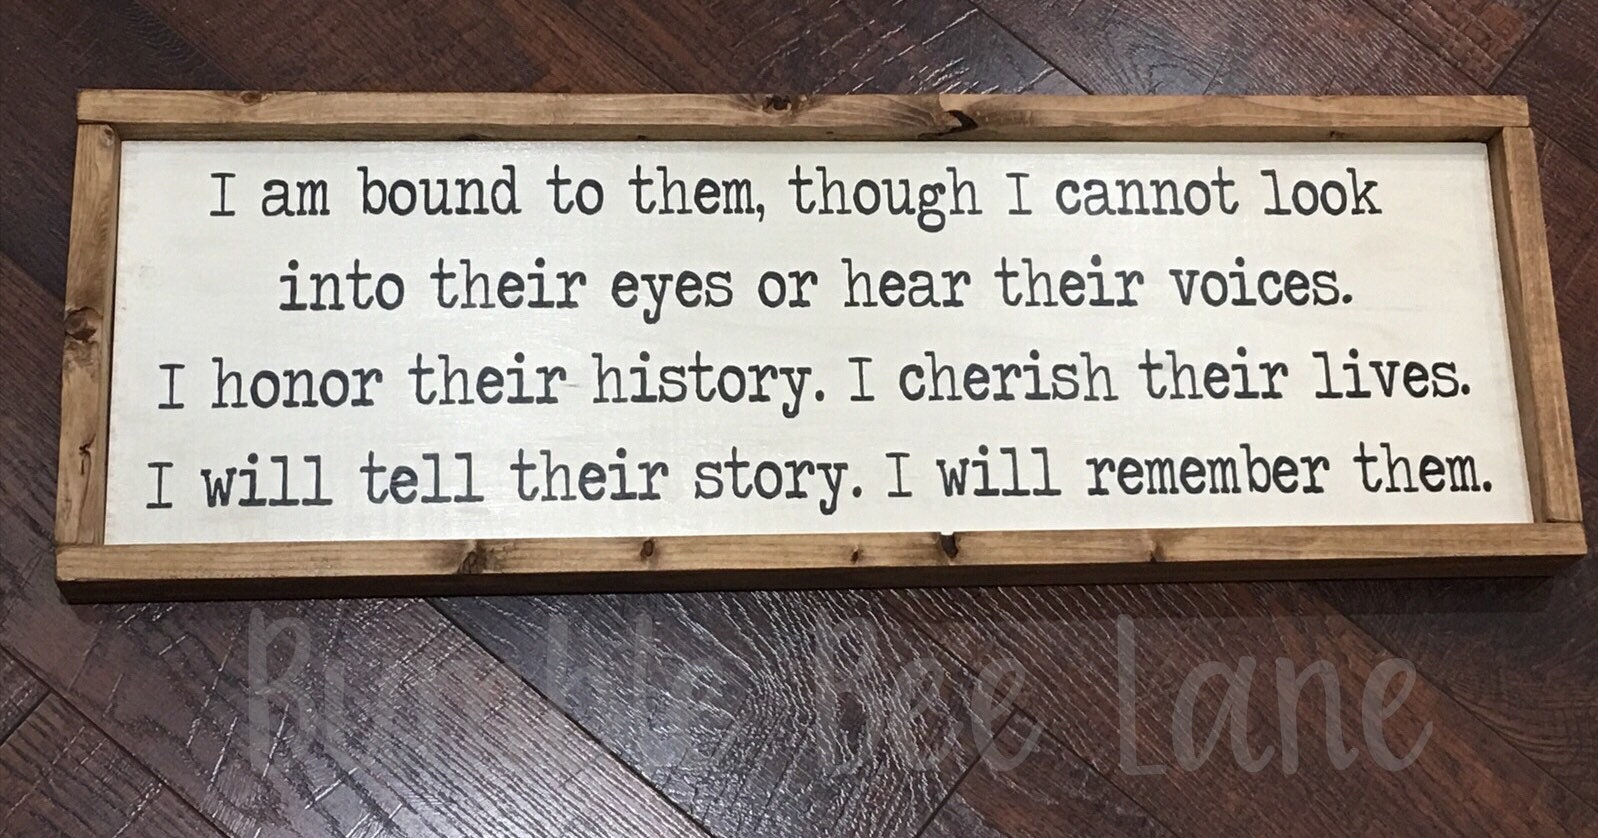 Geneolgy Sign Family Wall Decor I Am Bound To Them| Family History Sign Family Tree Sign Geneologist |Handcrafted Wood Sign